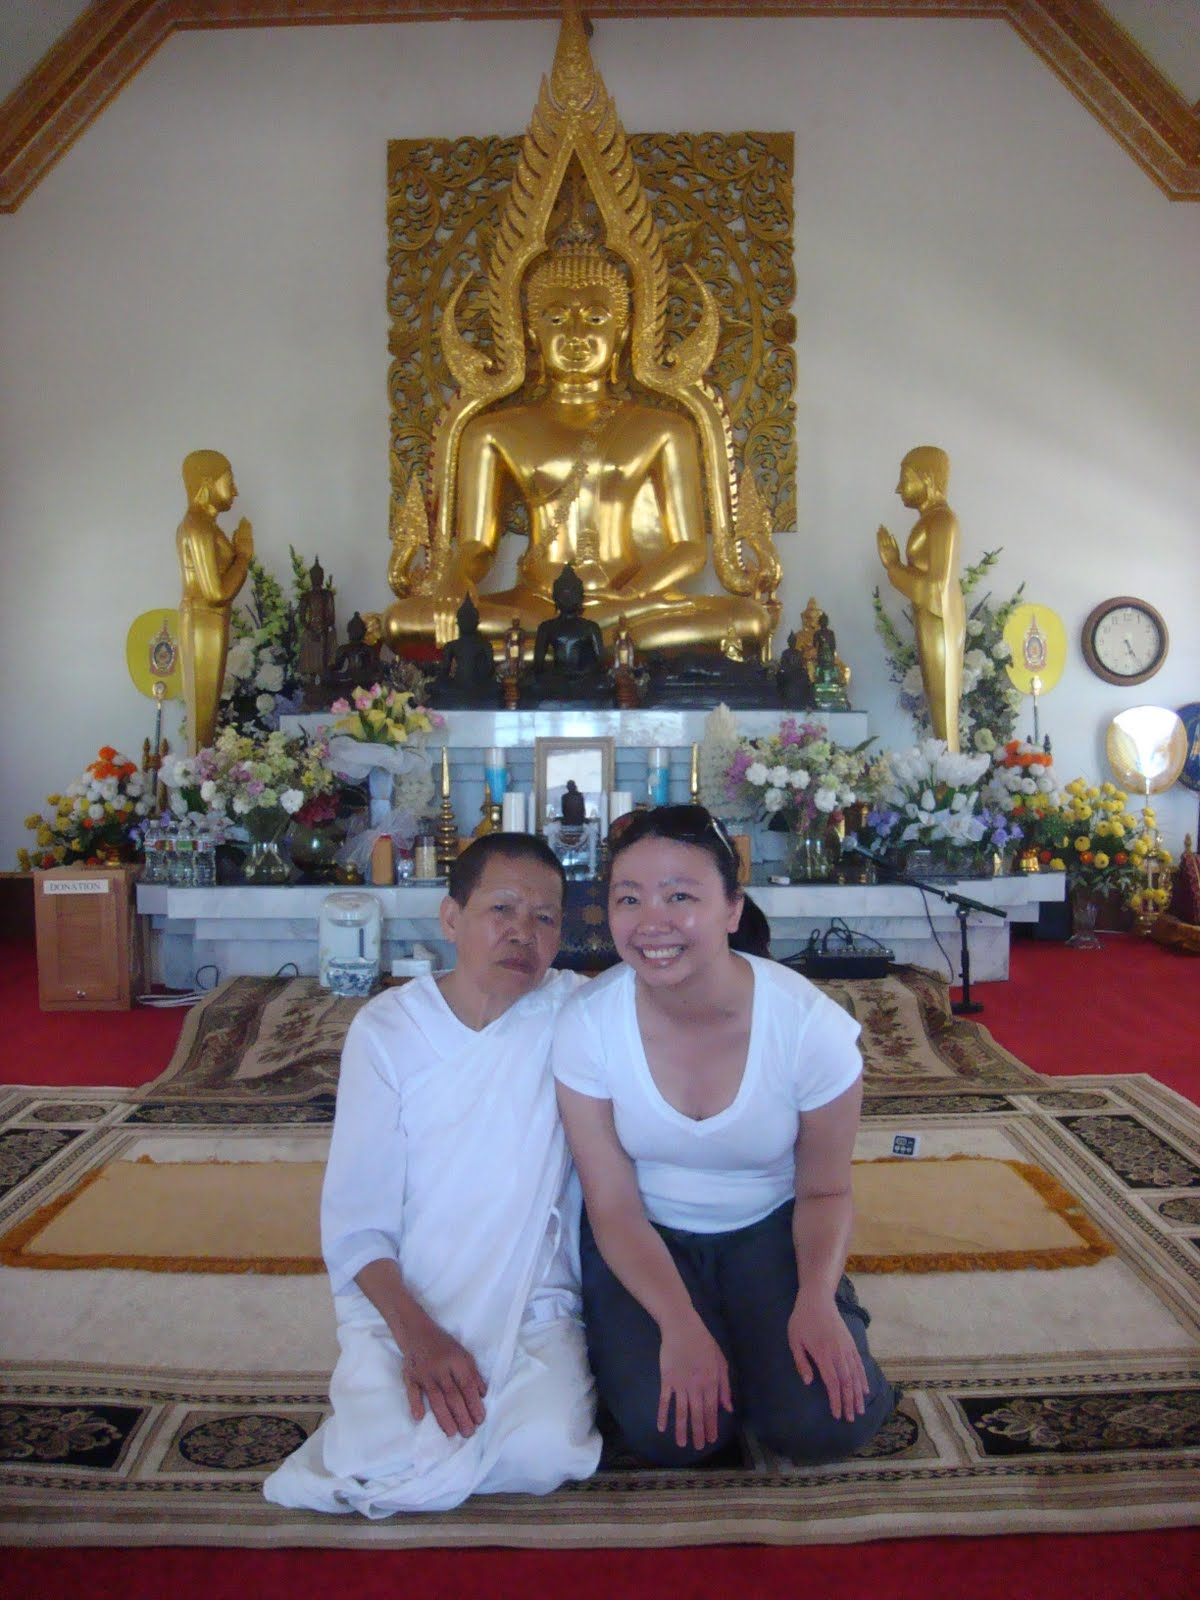 buddhist singles in marble falls Post + talk about your lotus flowers gallery pics in addition to rating the photos & posting comments  lotus flower buddhism views: 5672 60 votes 315.